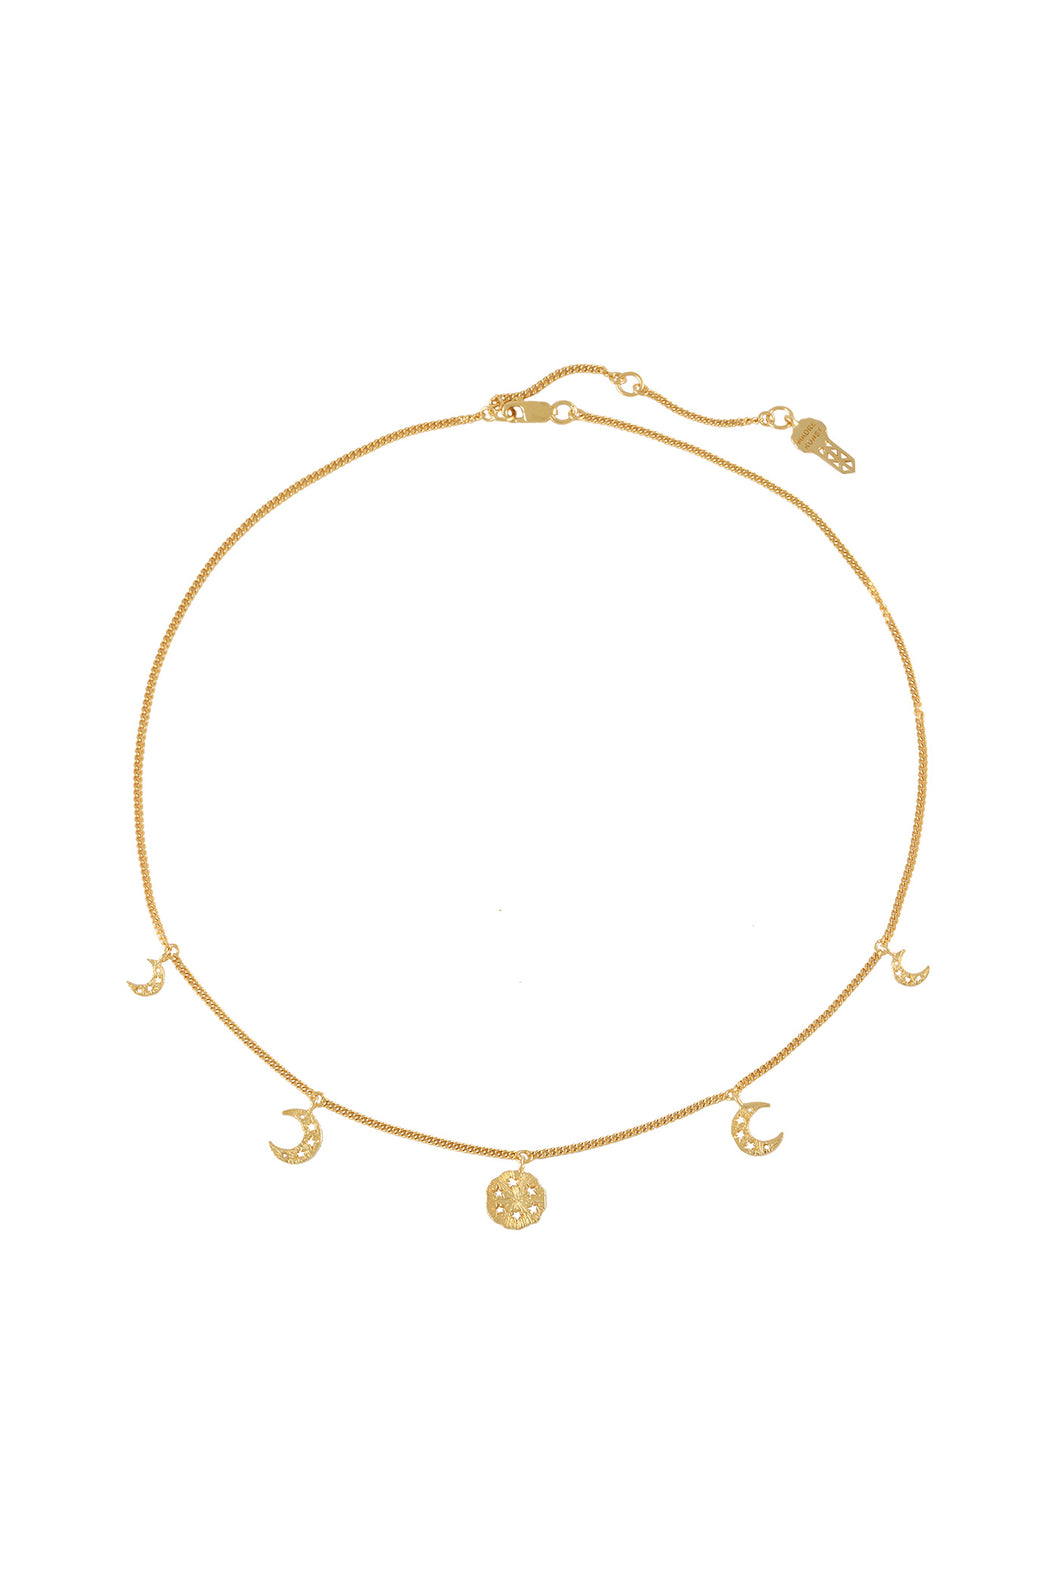 Moon cycle choker, 41 cm. Silver, gold plated.